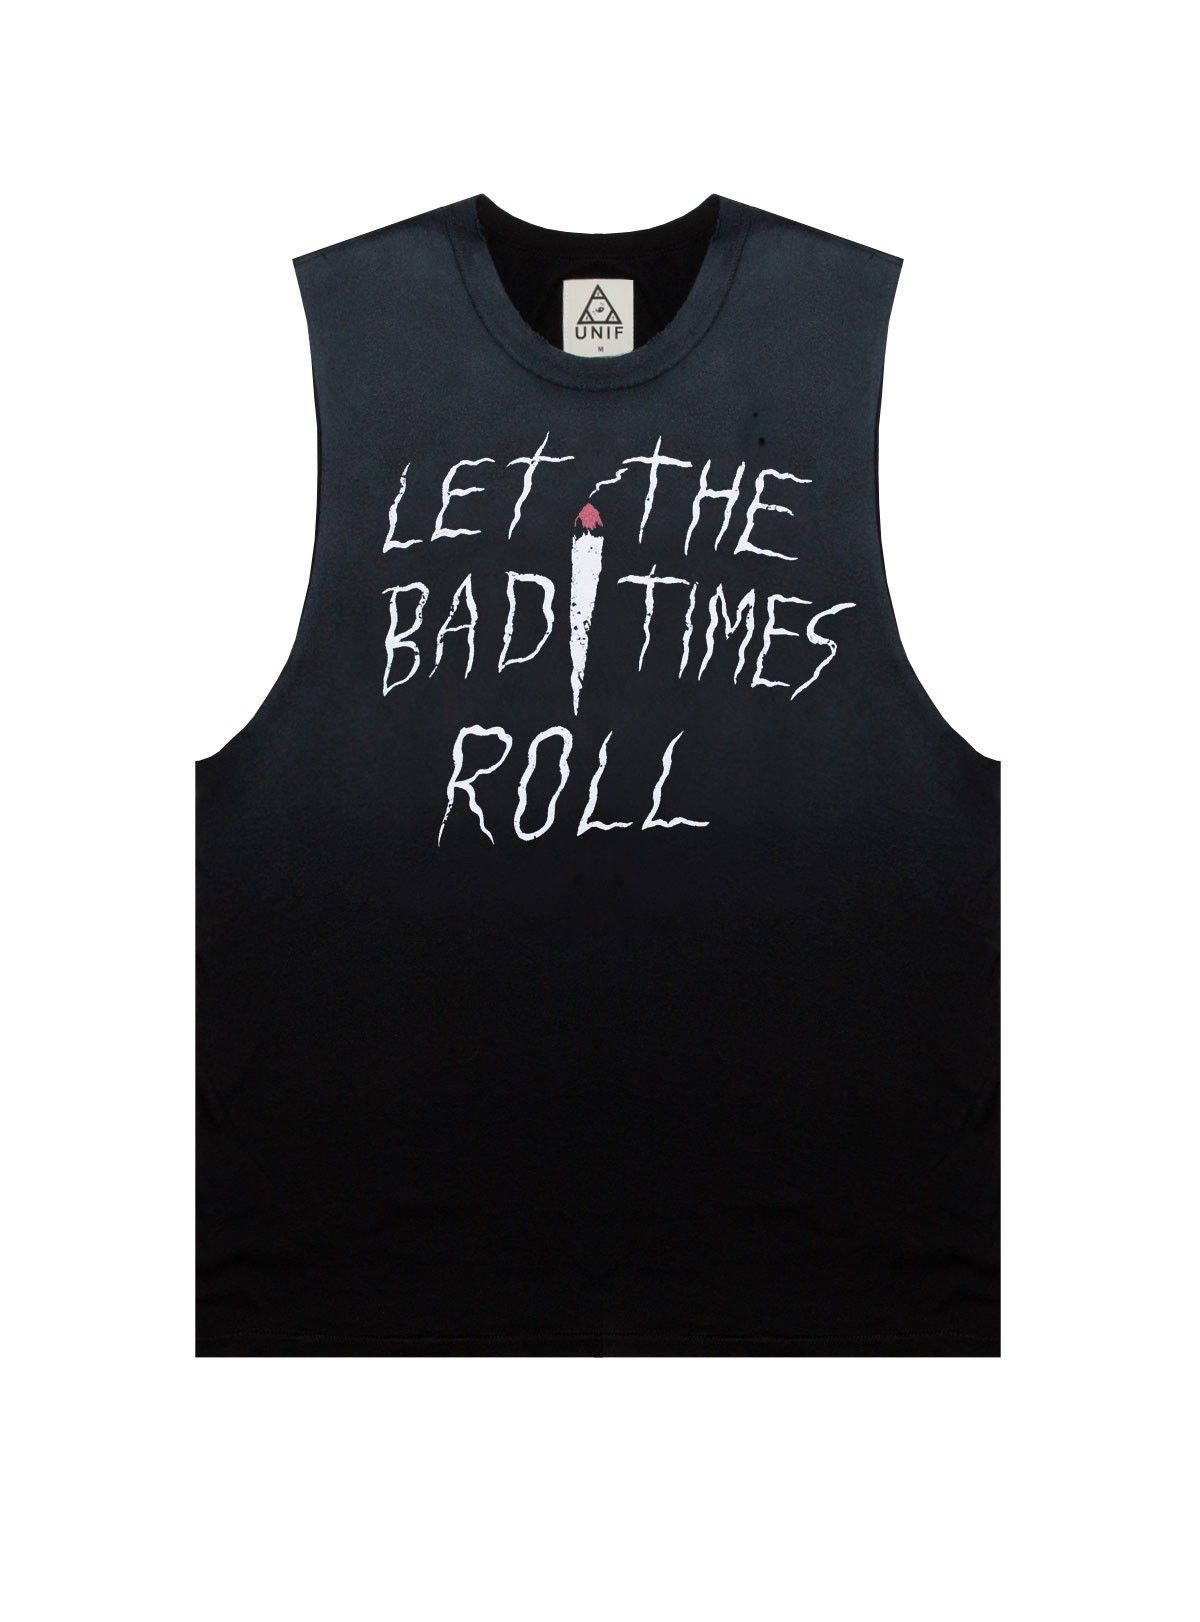 UNIF | BAD TIMES ROLL